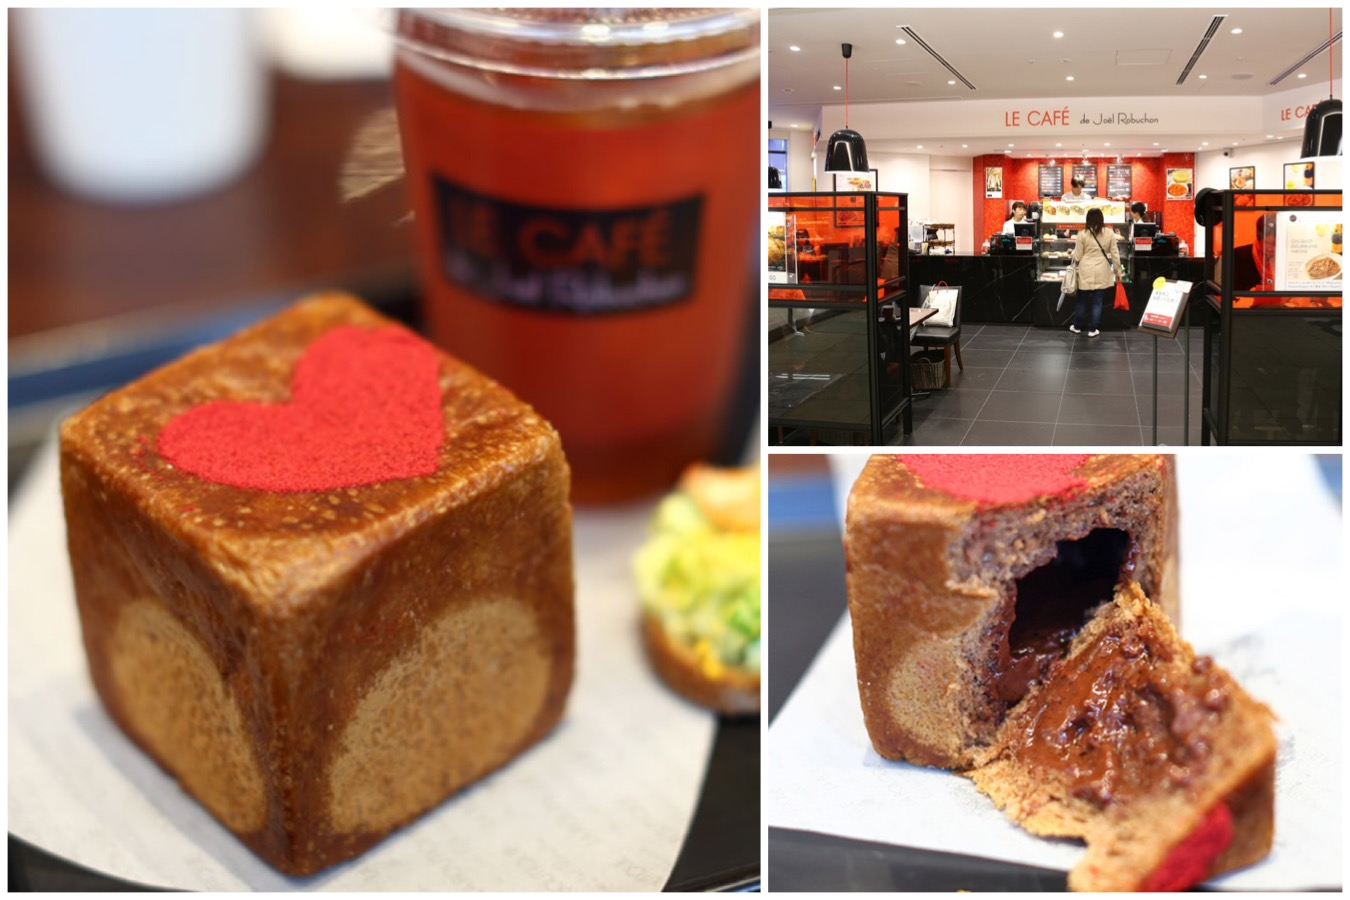 Le Café de Joël Robuchon - Bakery Cafe By The Most Starred Michelin Chef, At Shinjuku Tokyo